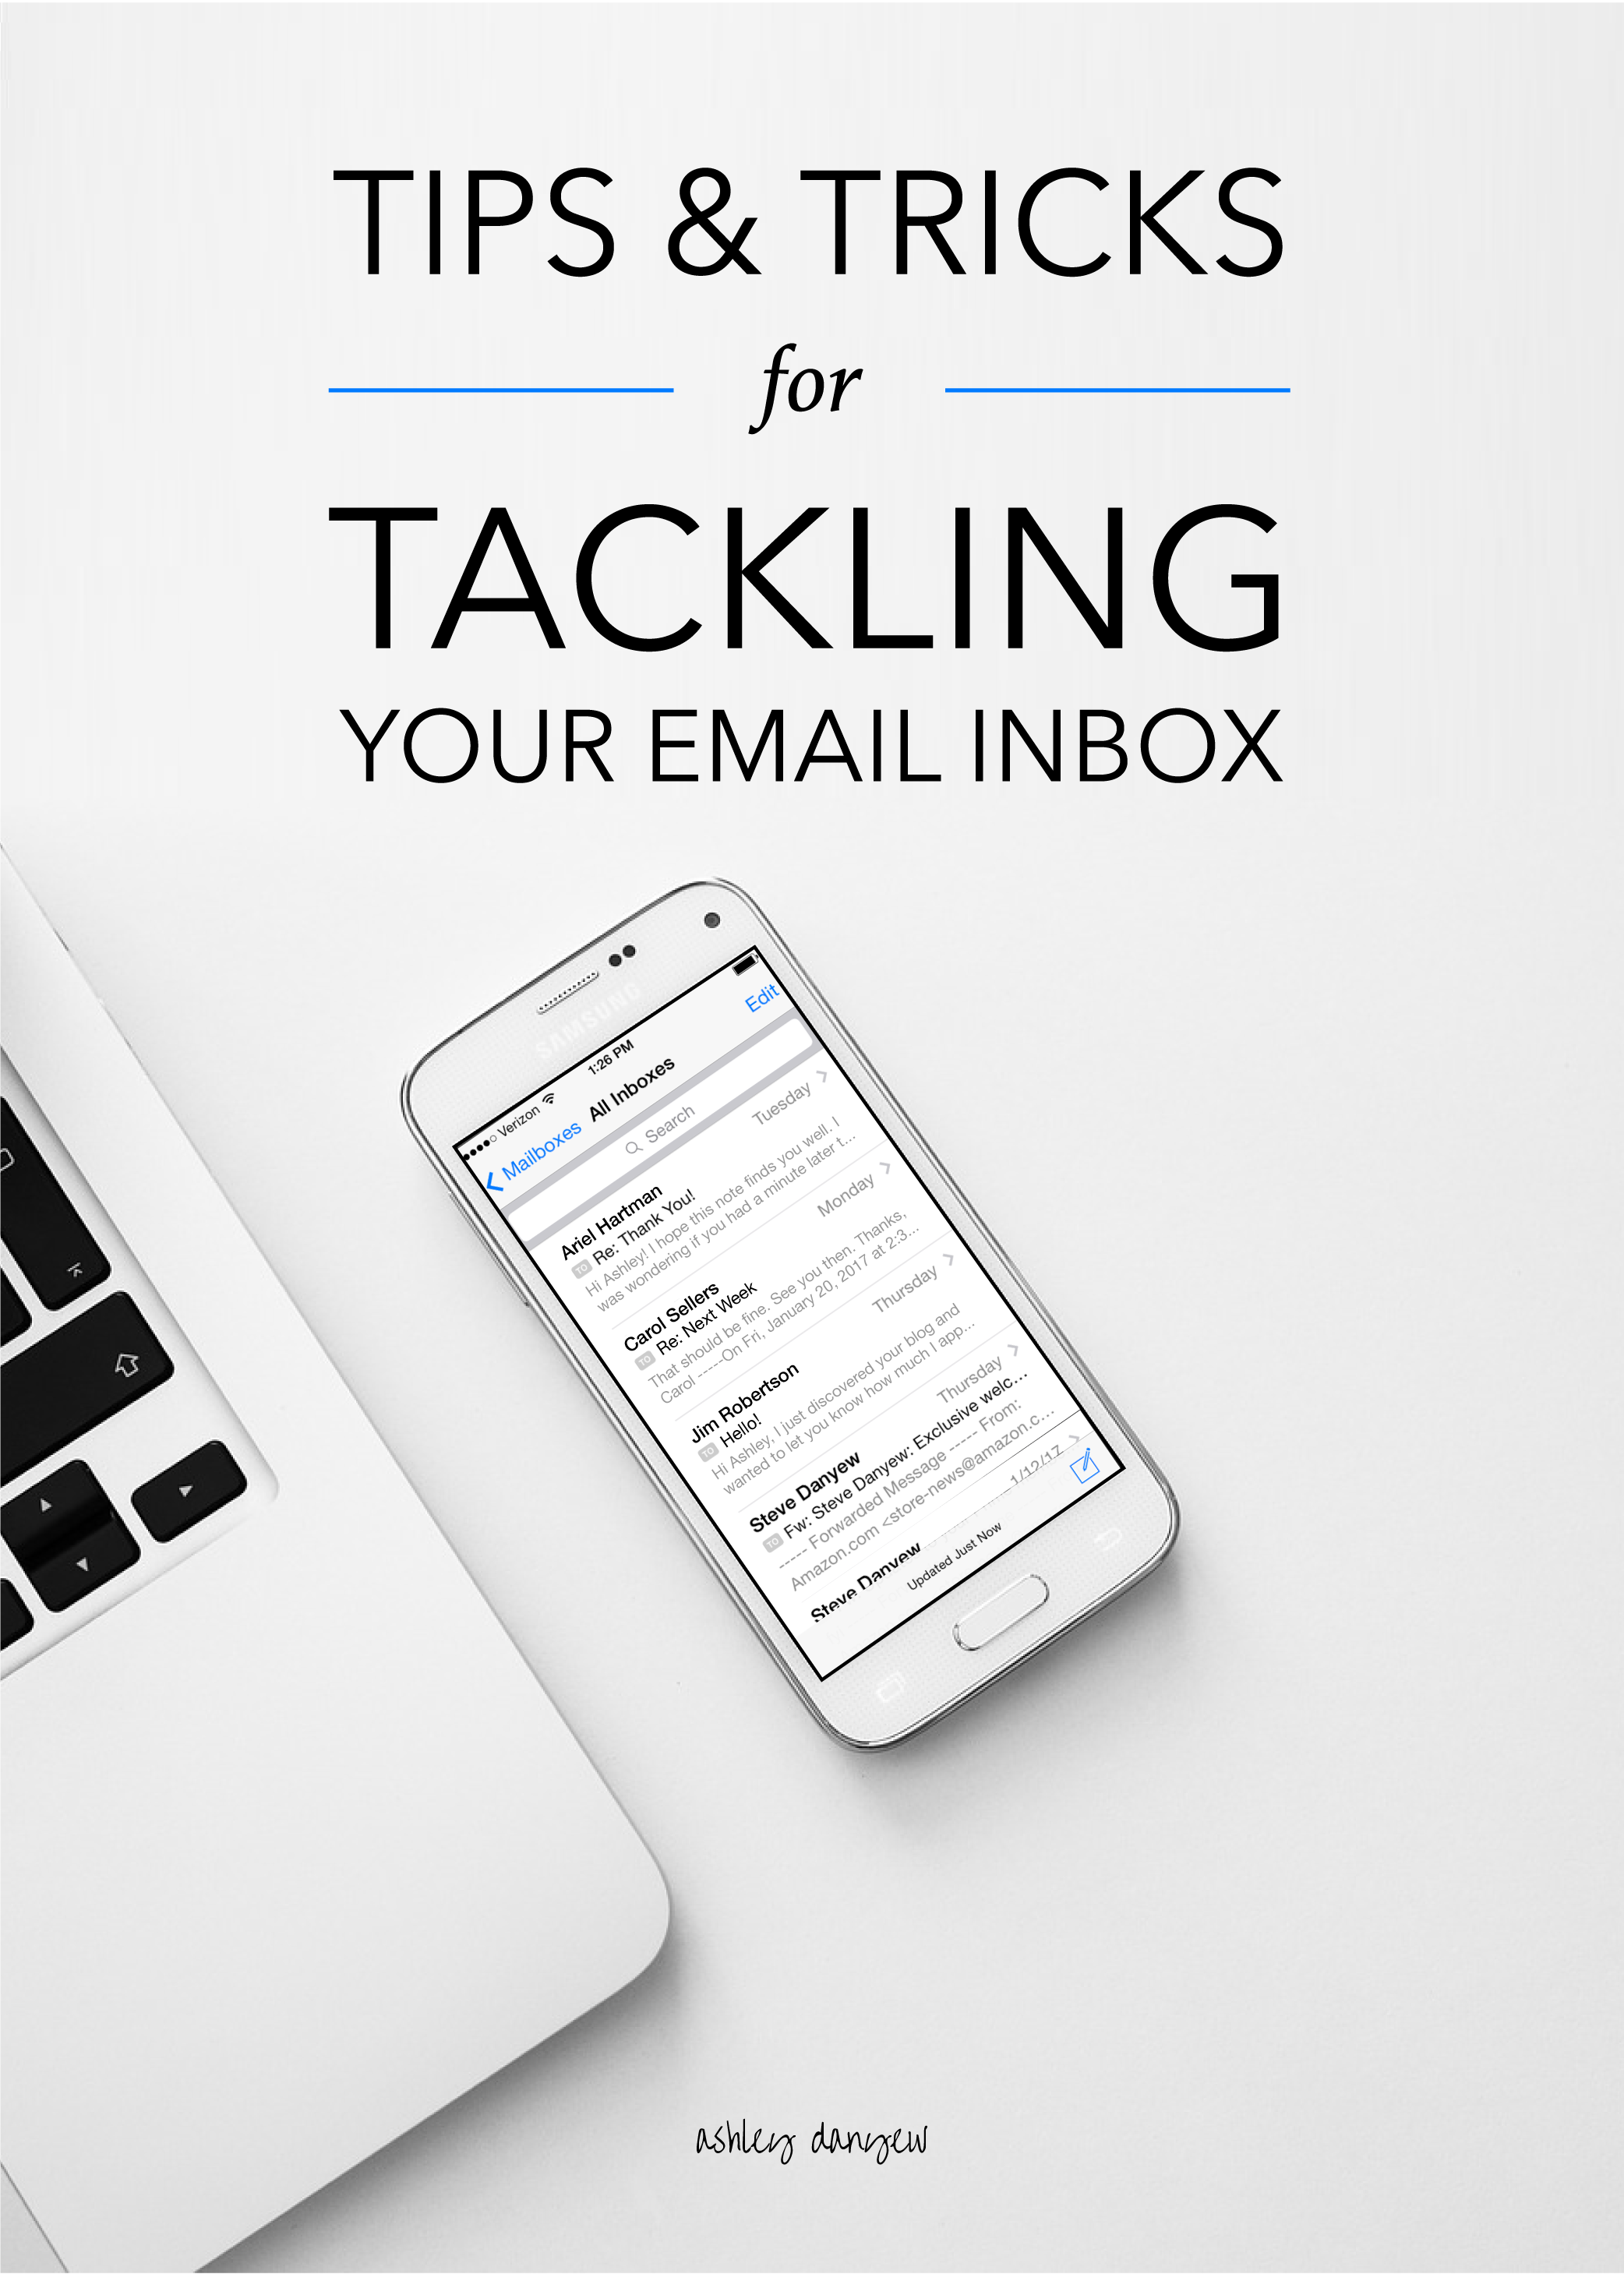 Tips and Tricks for Tackling Your Email Inbox-08.png